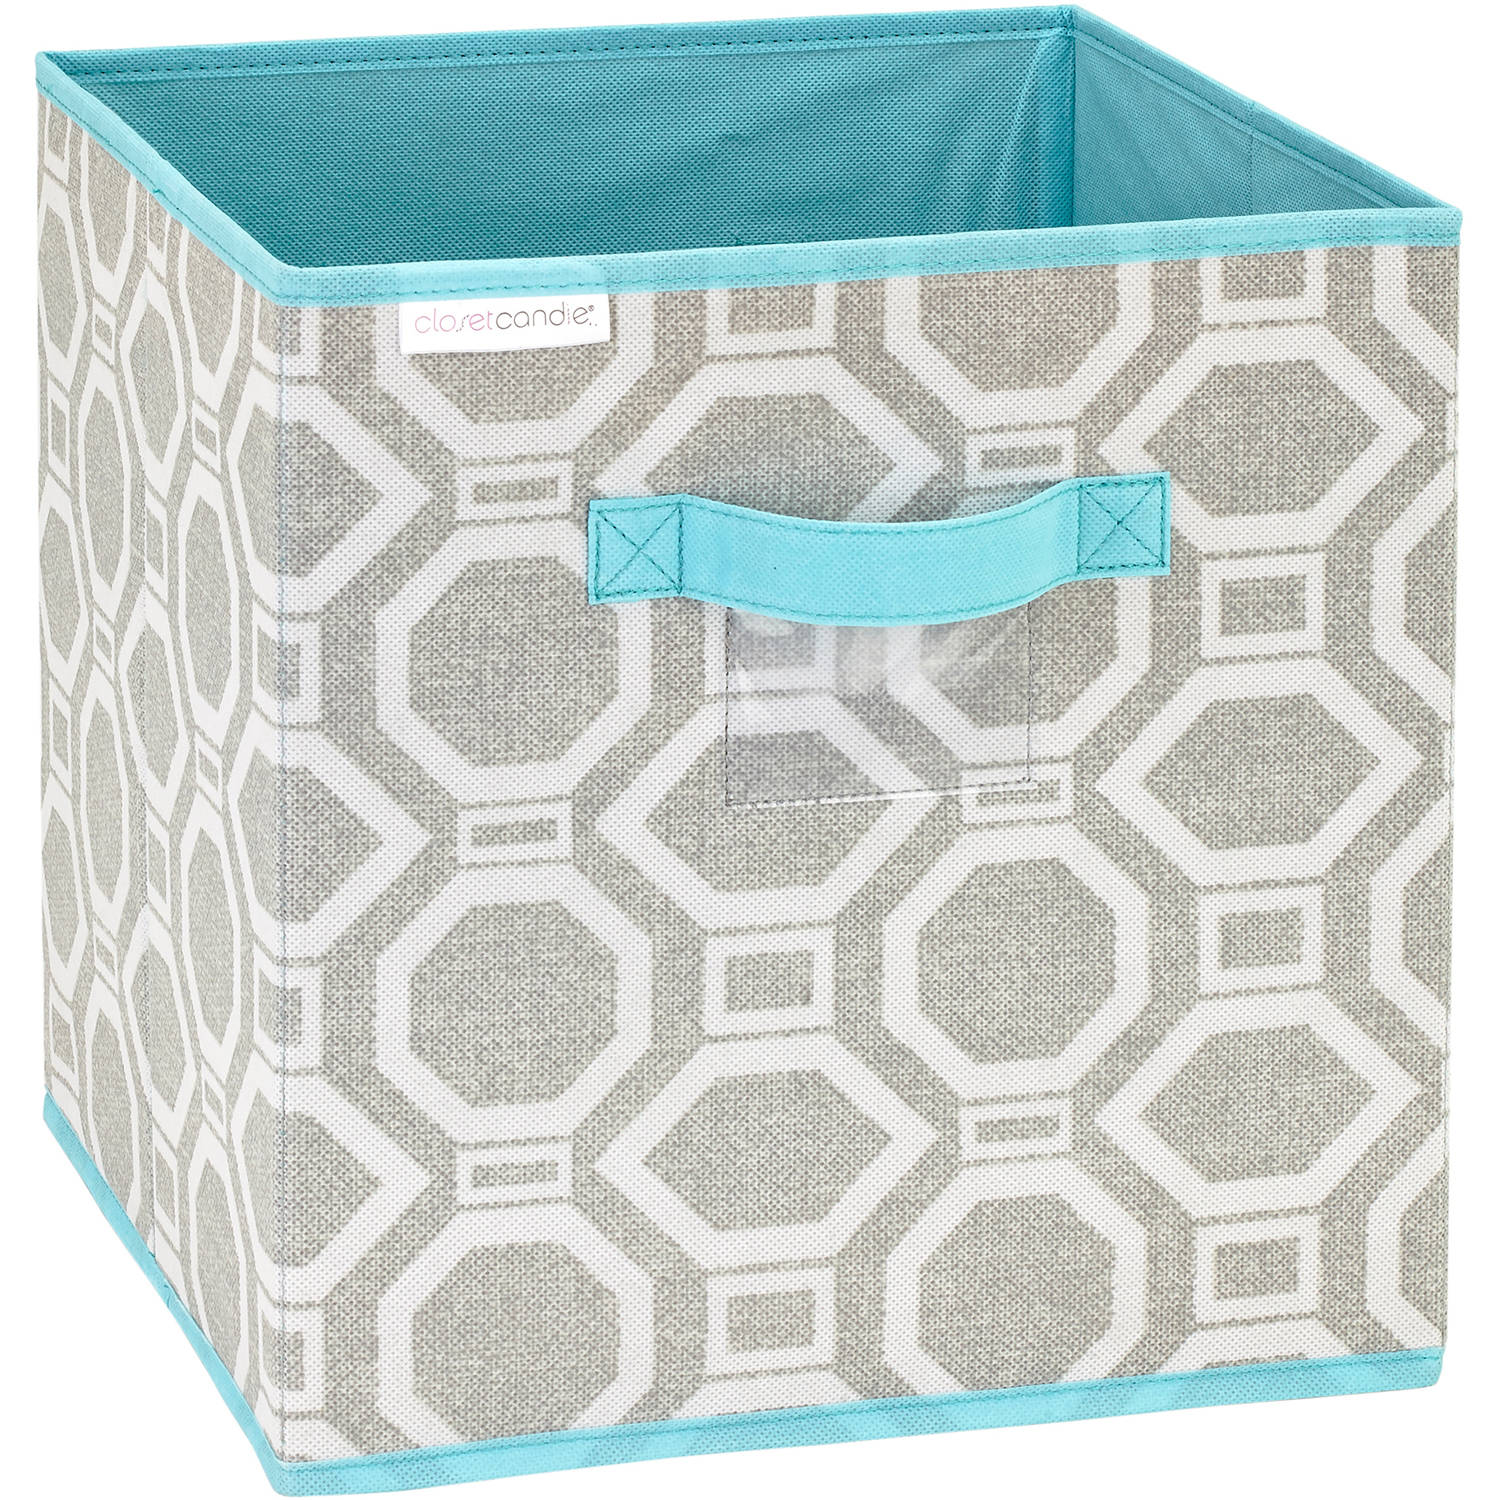 ClosetCandie Dove Grey Storage Cube